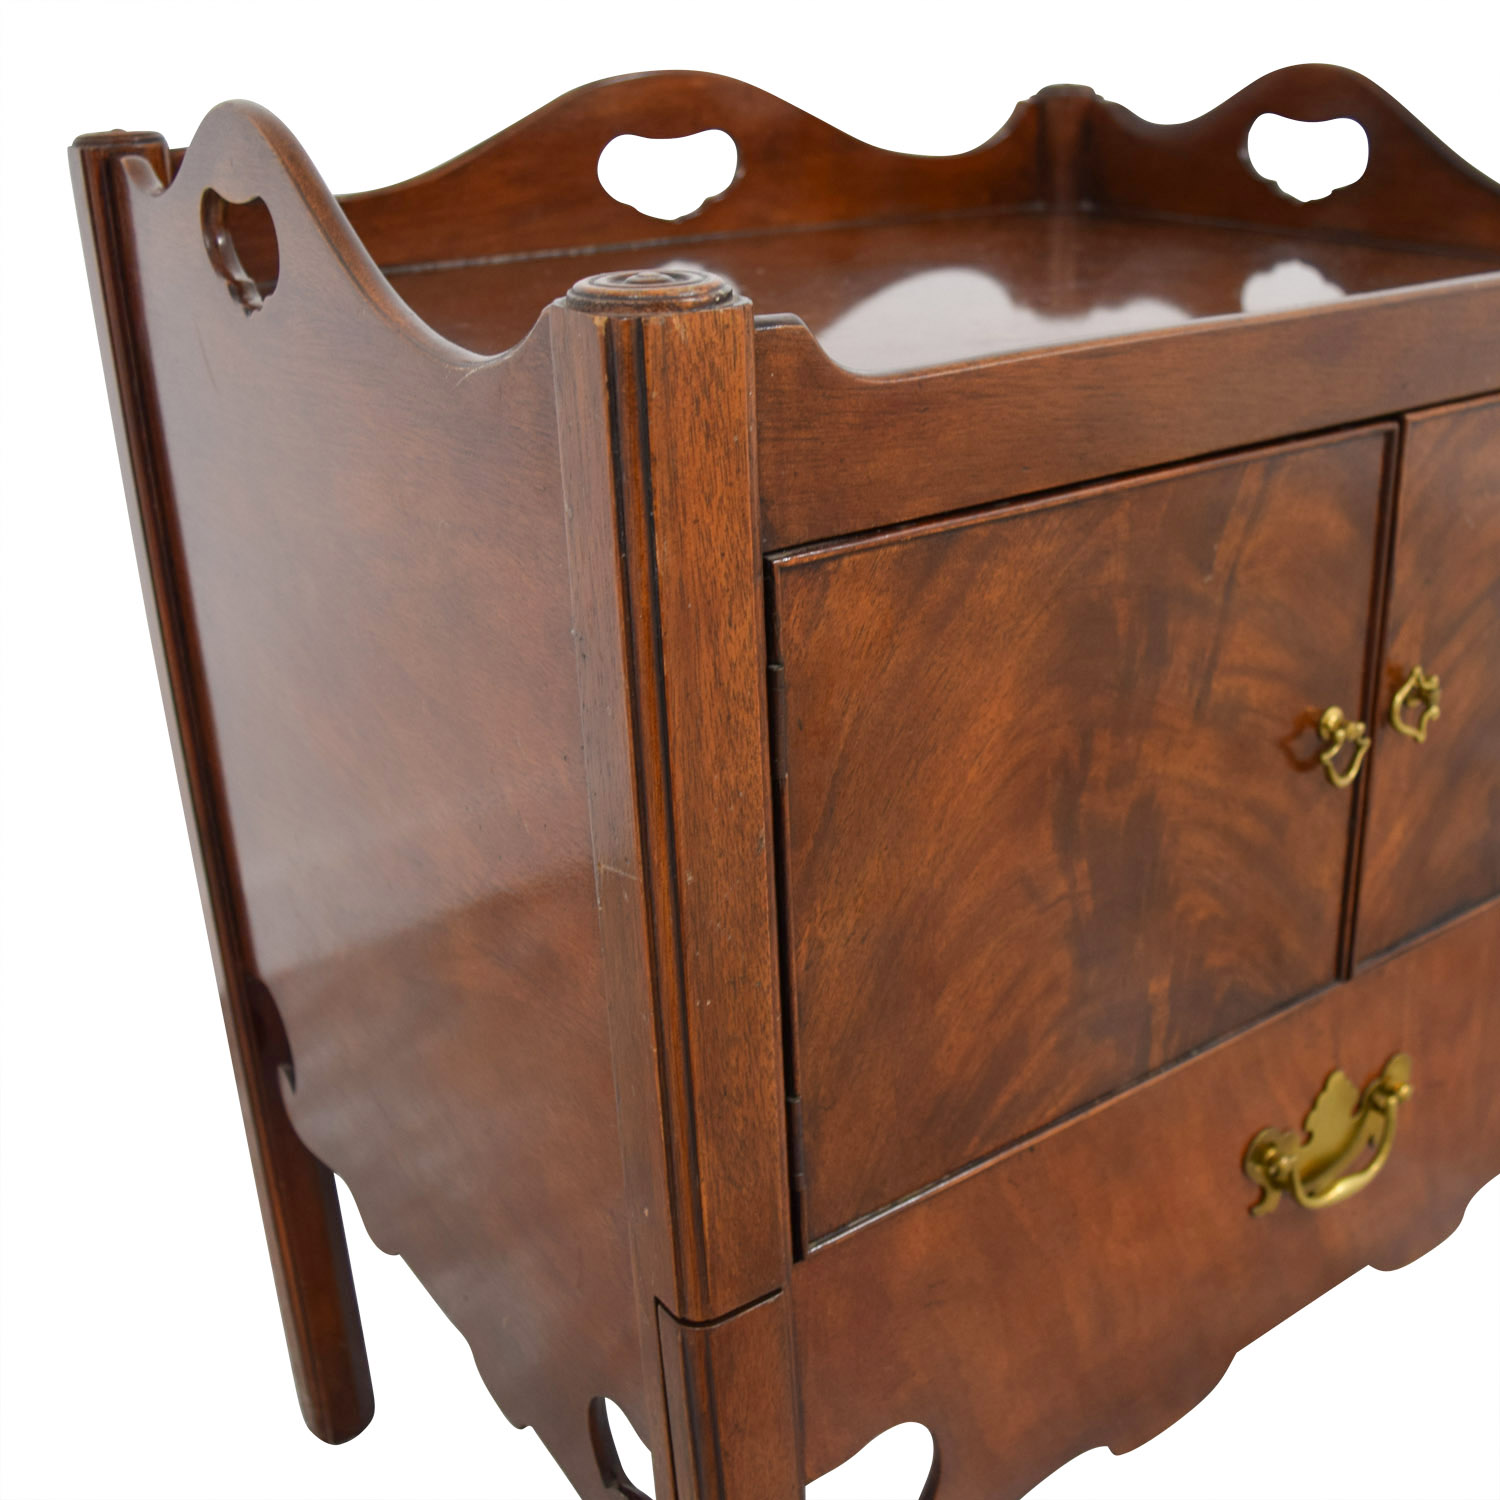 Furniture Masters Furniture Masters Antique Nesting Style End Table dimensions